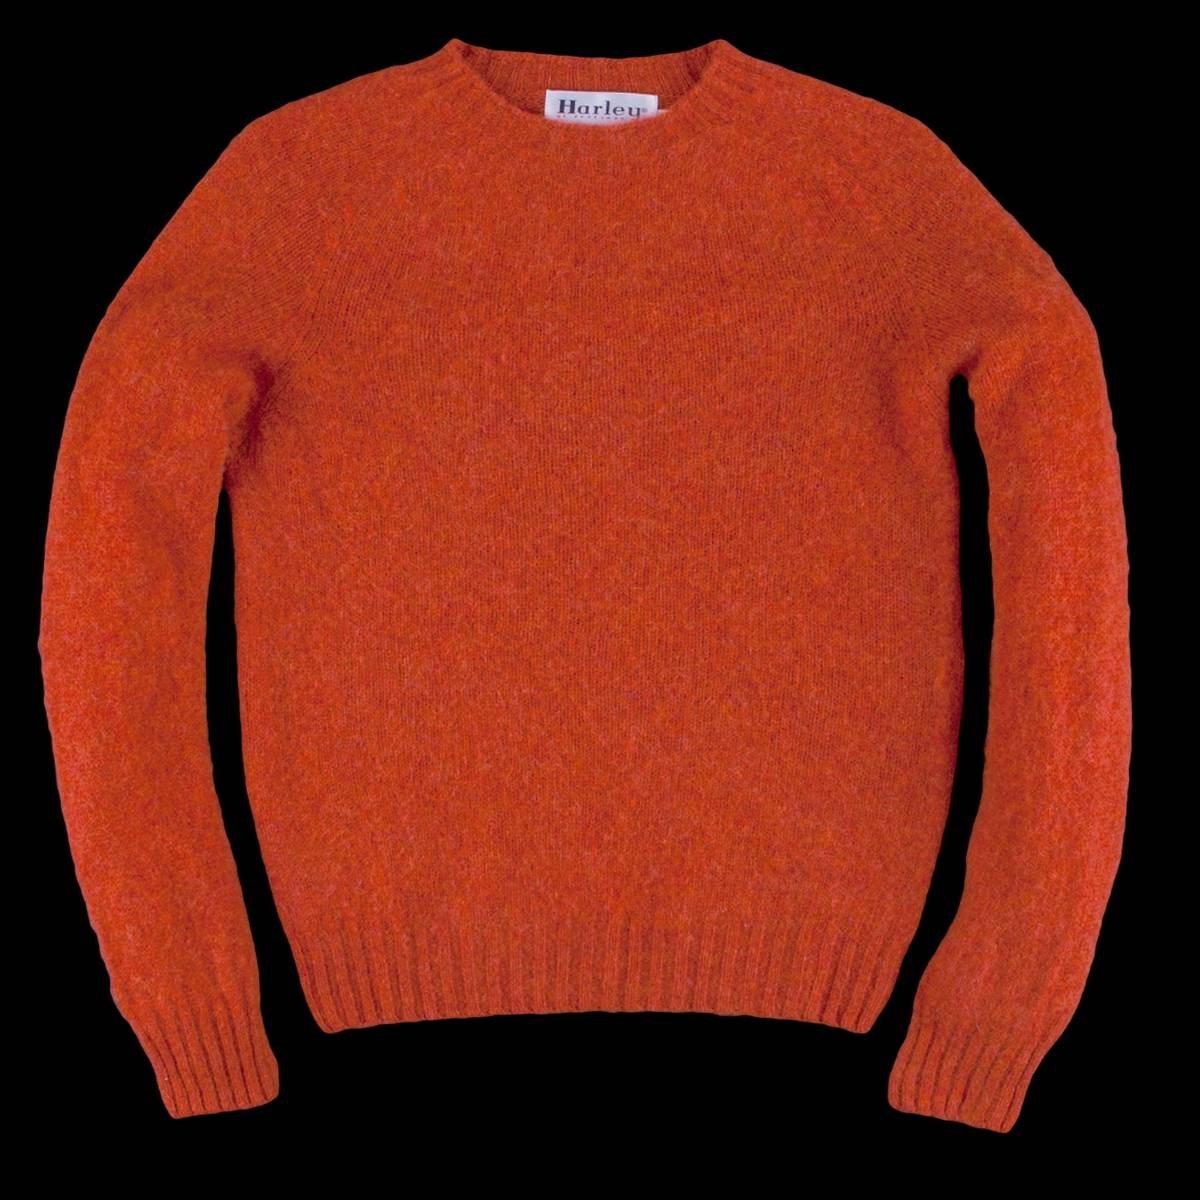 Harley Of Scotland Nwt Shetland Crew Neck Sweater In Iron Rust Size